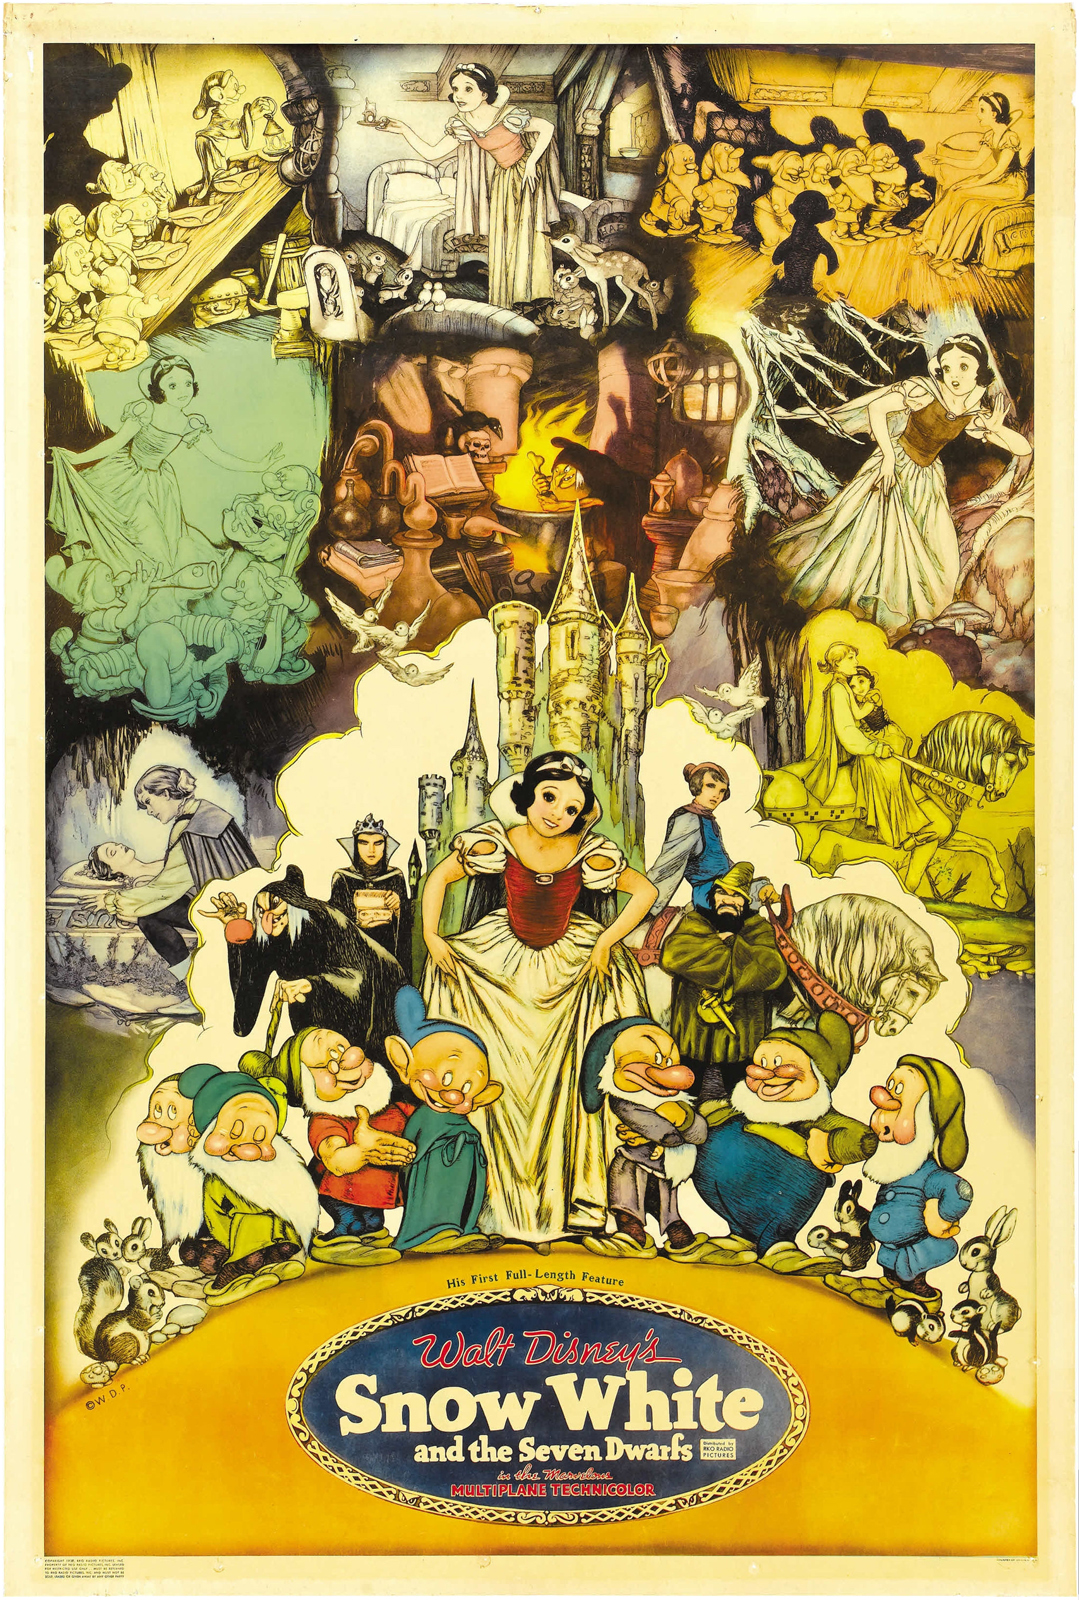 Filmic Light - Snow White Archive: A Closer Look at ...